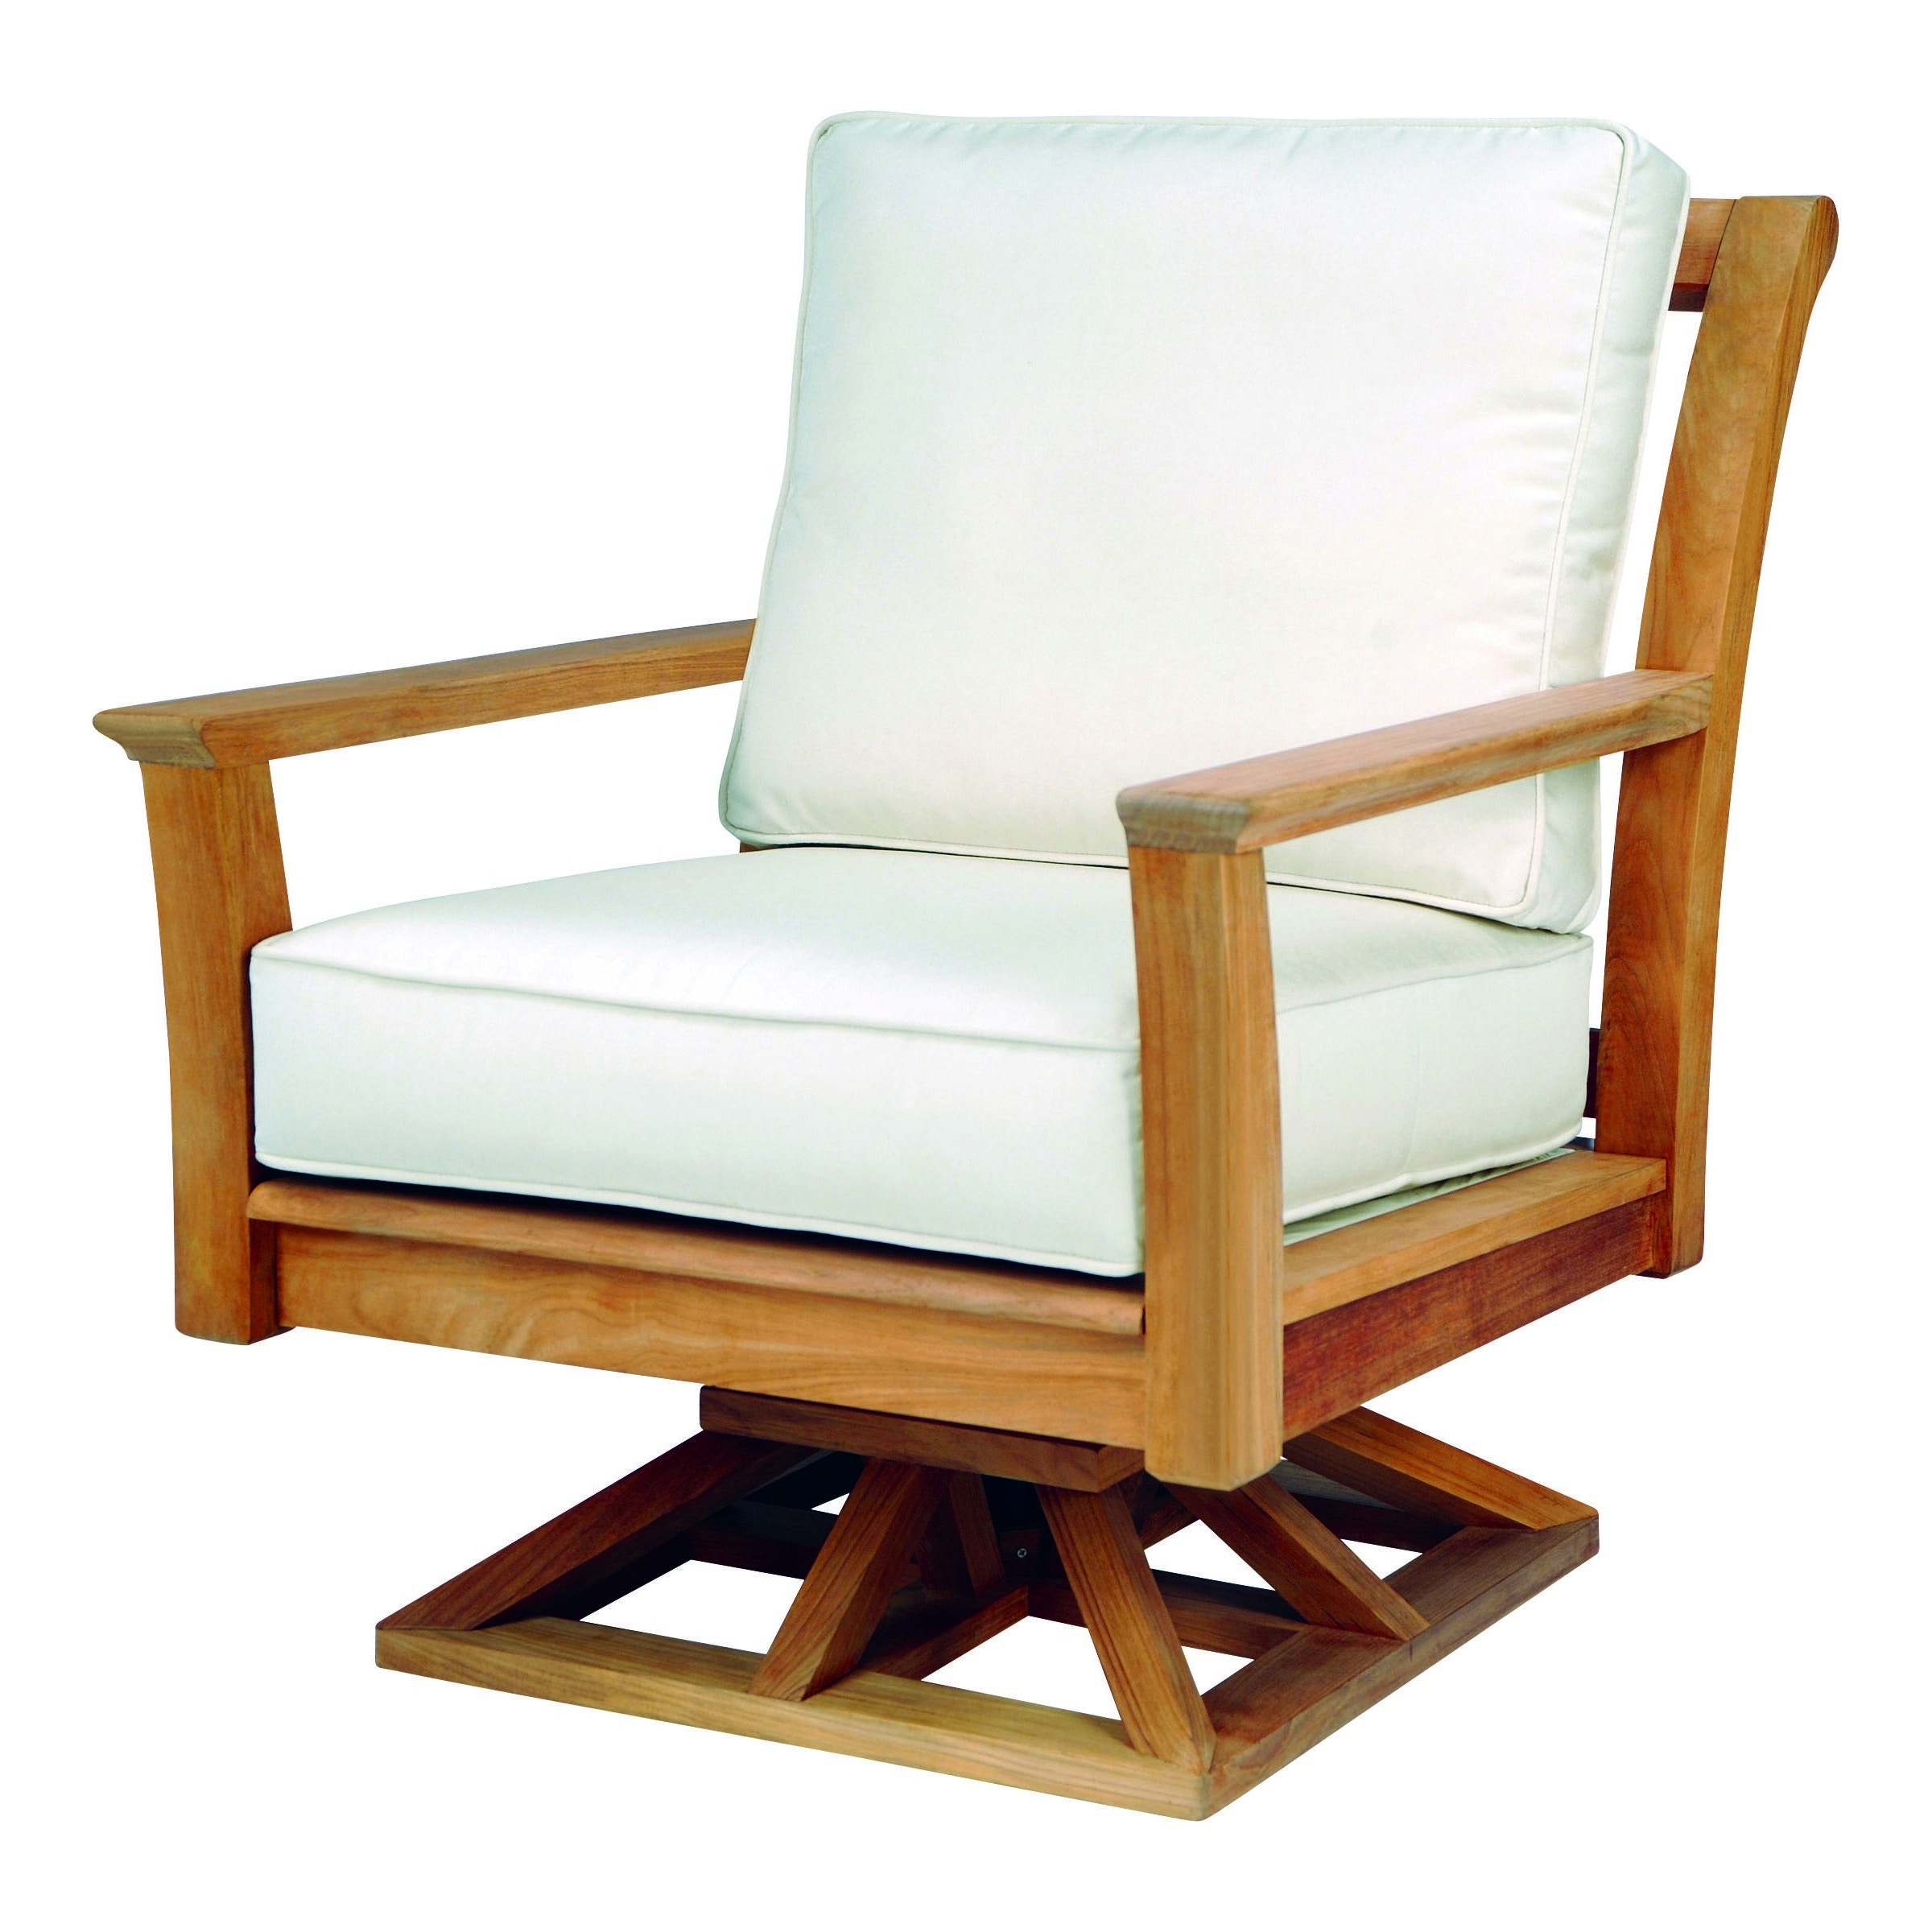 Kingsley Bate Chelsea Swivel Rocker Chair | Outdoor Furniture At KEY Home, Portland  OR